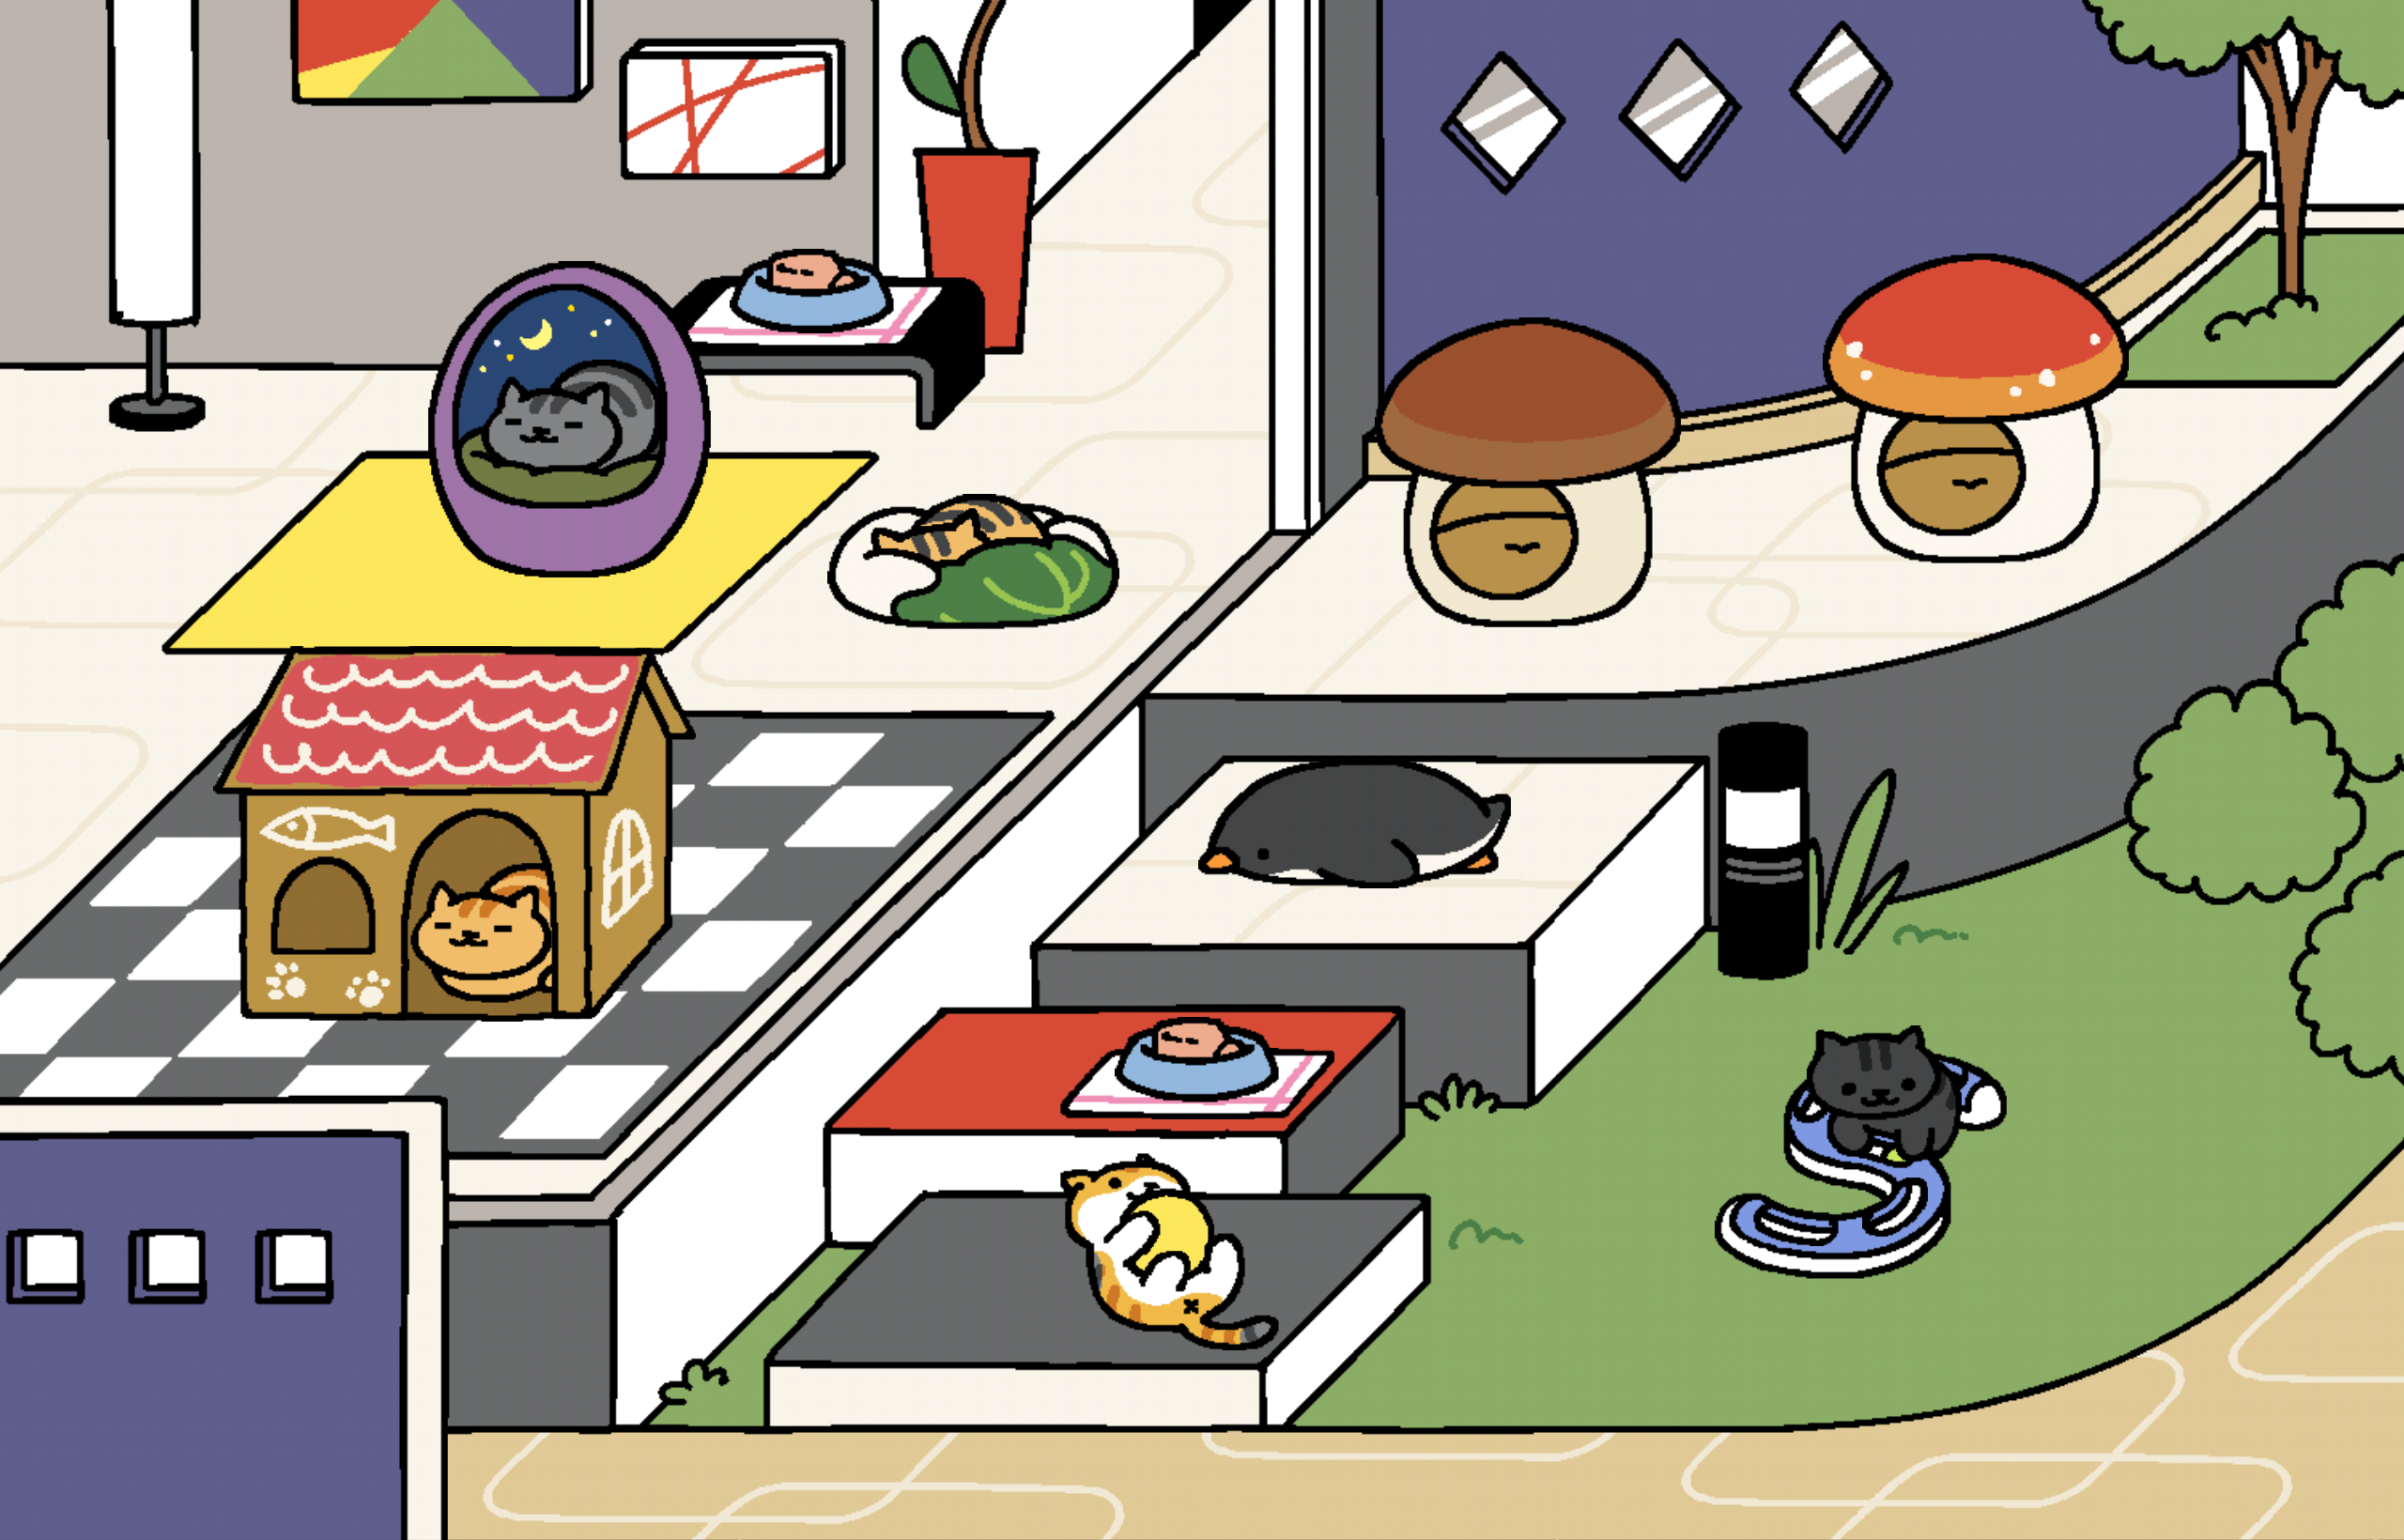 A colourful house and garden with various items placed. There are different cats interacting with some of the items.